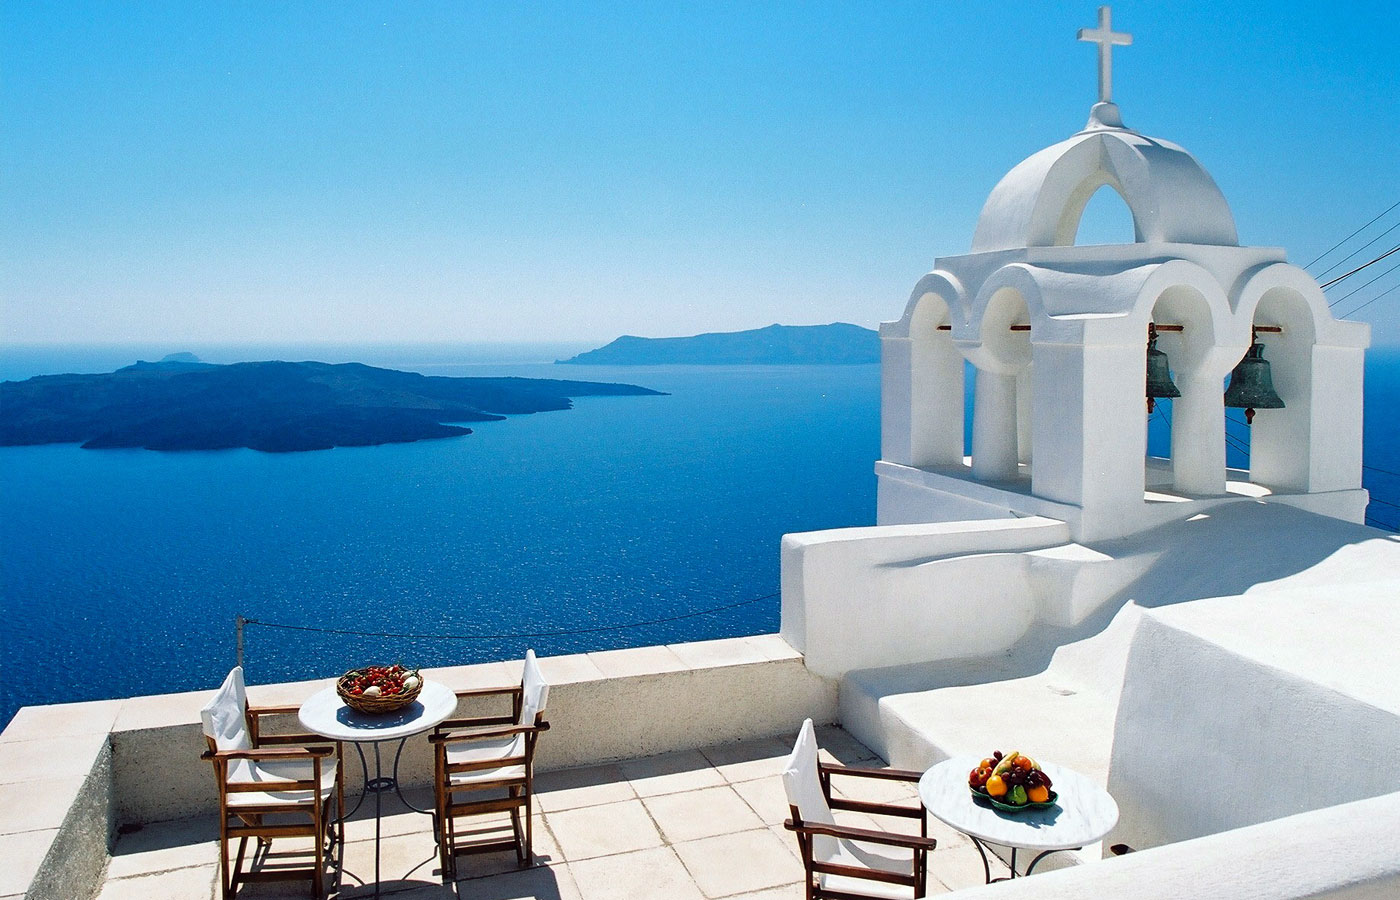 santorini-greece-photo-3